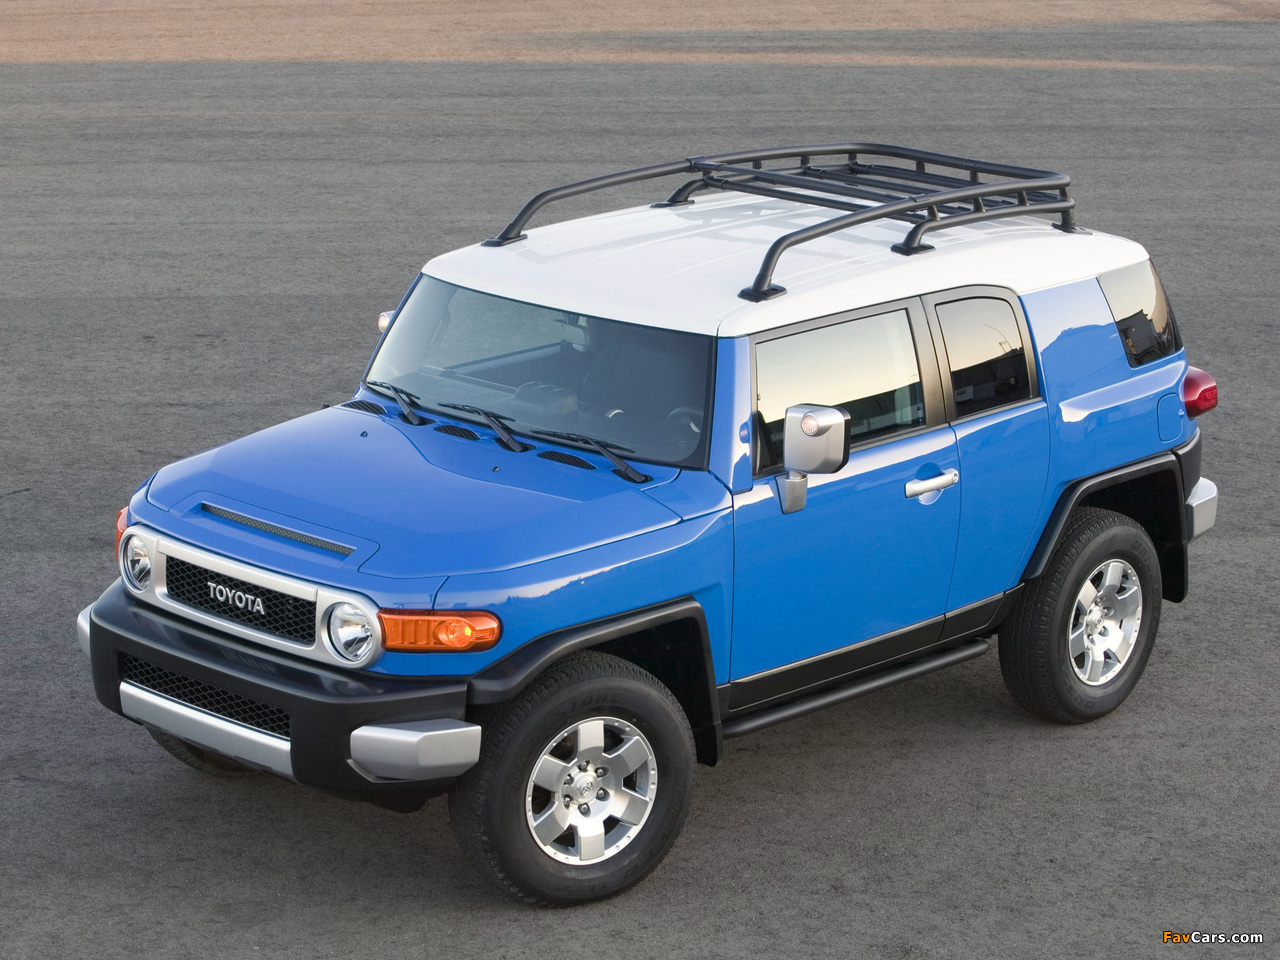 Toyota fj cruiser wallpapers download